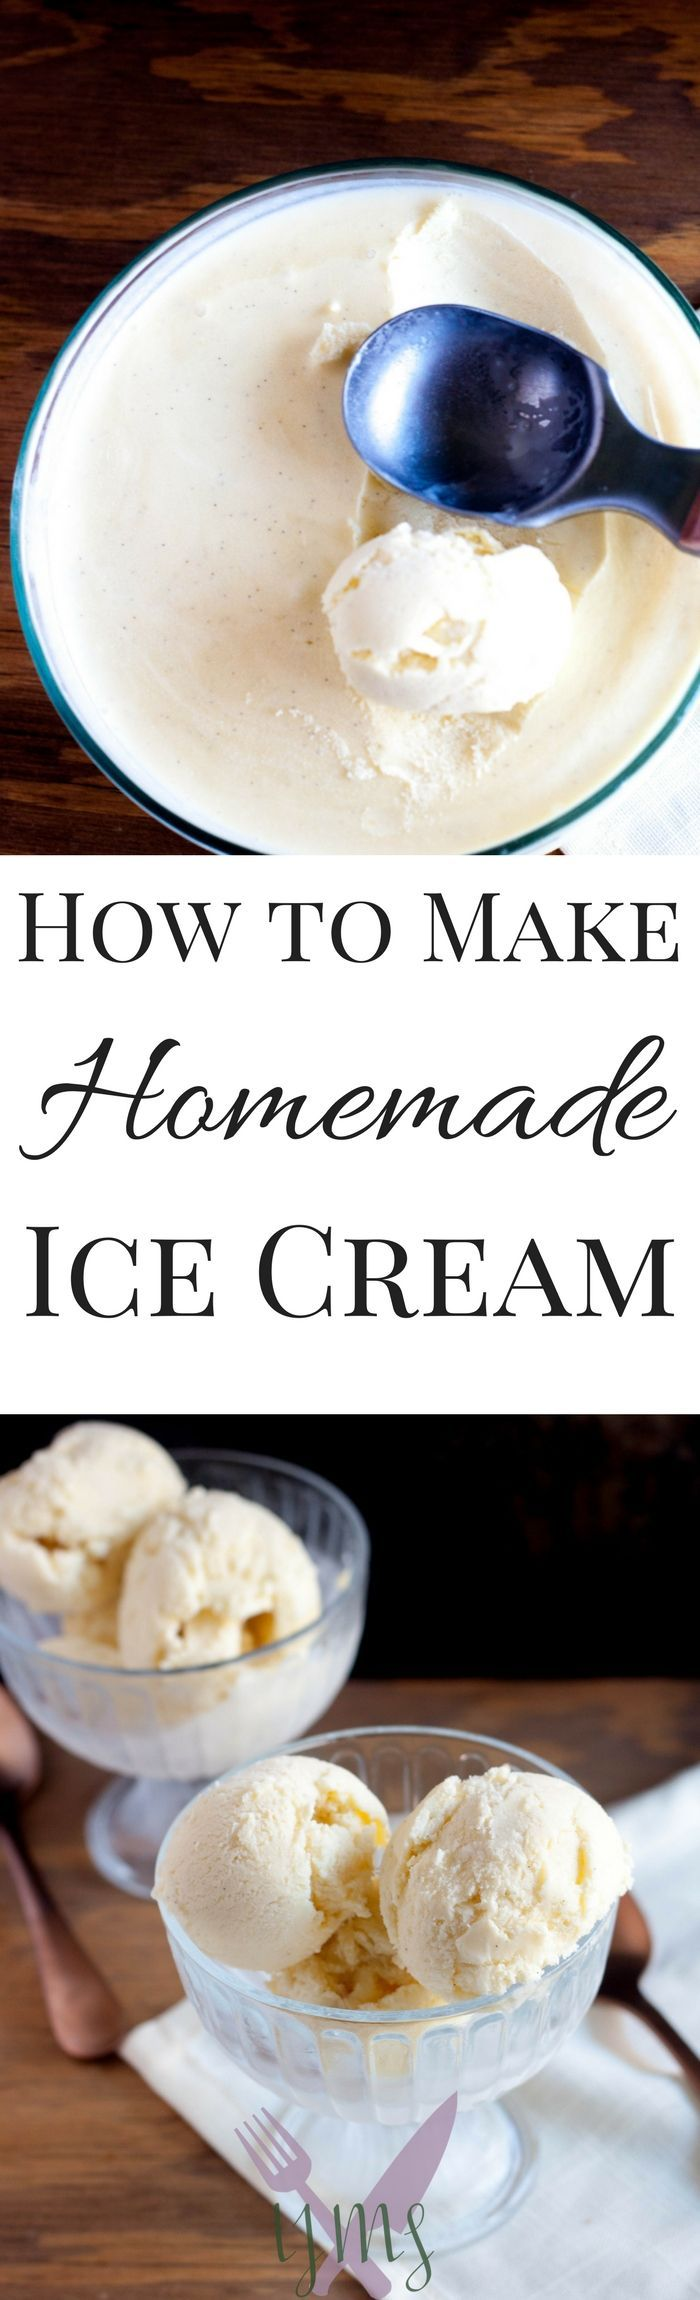 Making ice cream at home couldn't be any easier than with this simple steps. Homemade ice cream is the best because you can make it the way YOU like!